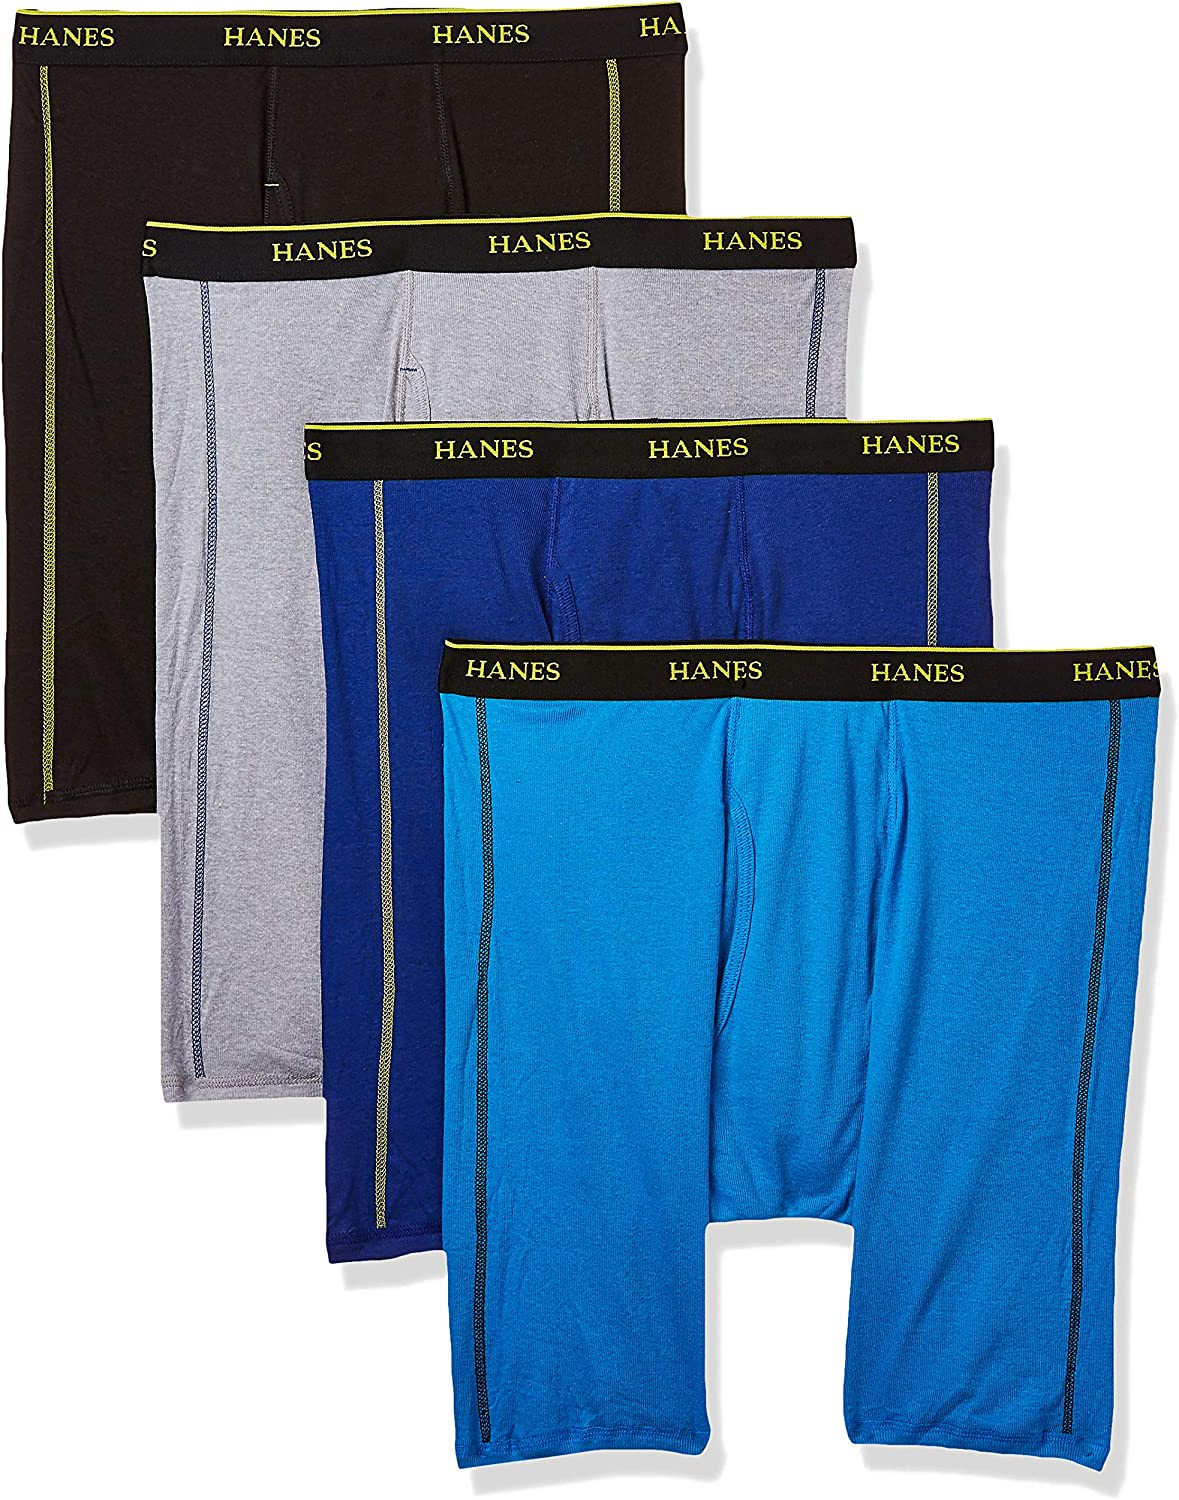 Hanes Ultimate Men's Sport Cotton W/Wicking Long Leg Boxer Brief 4-Pack